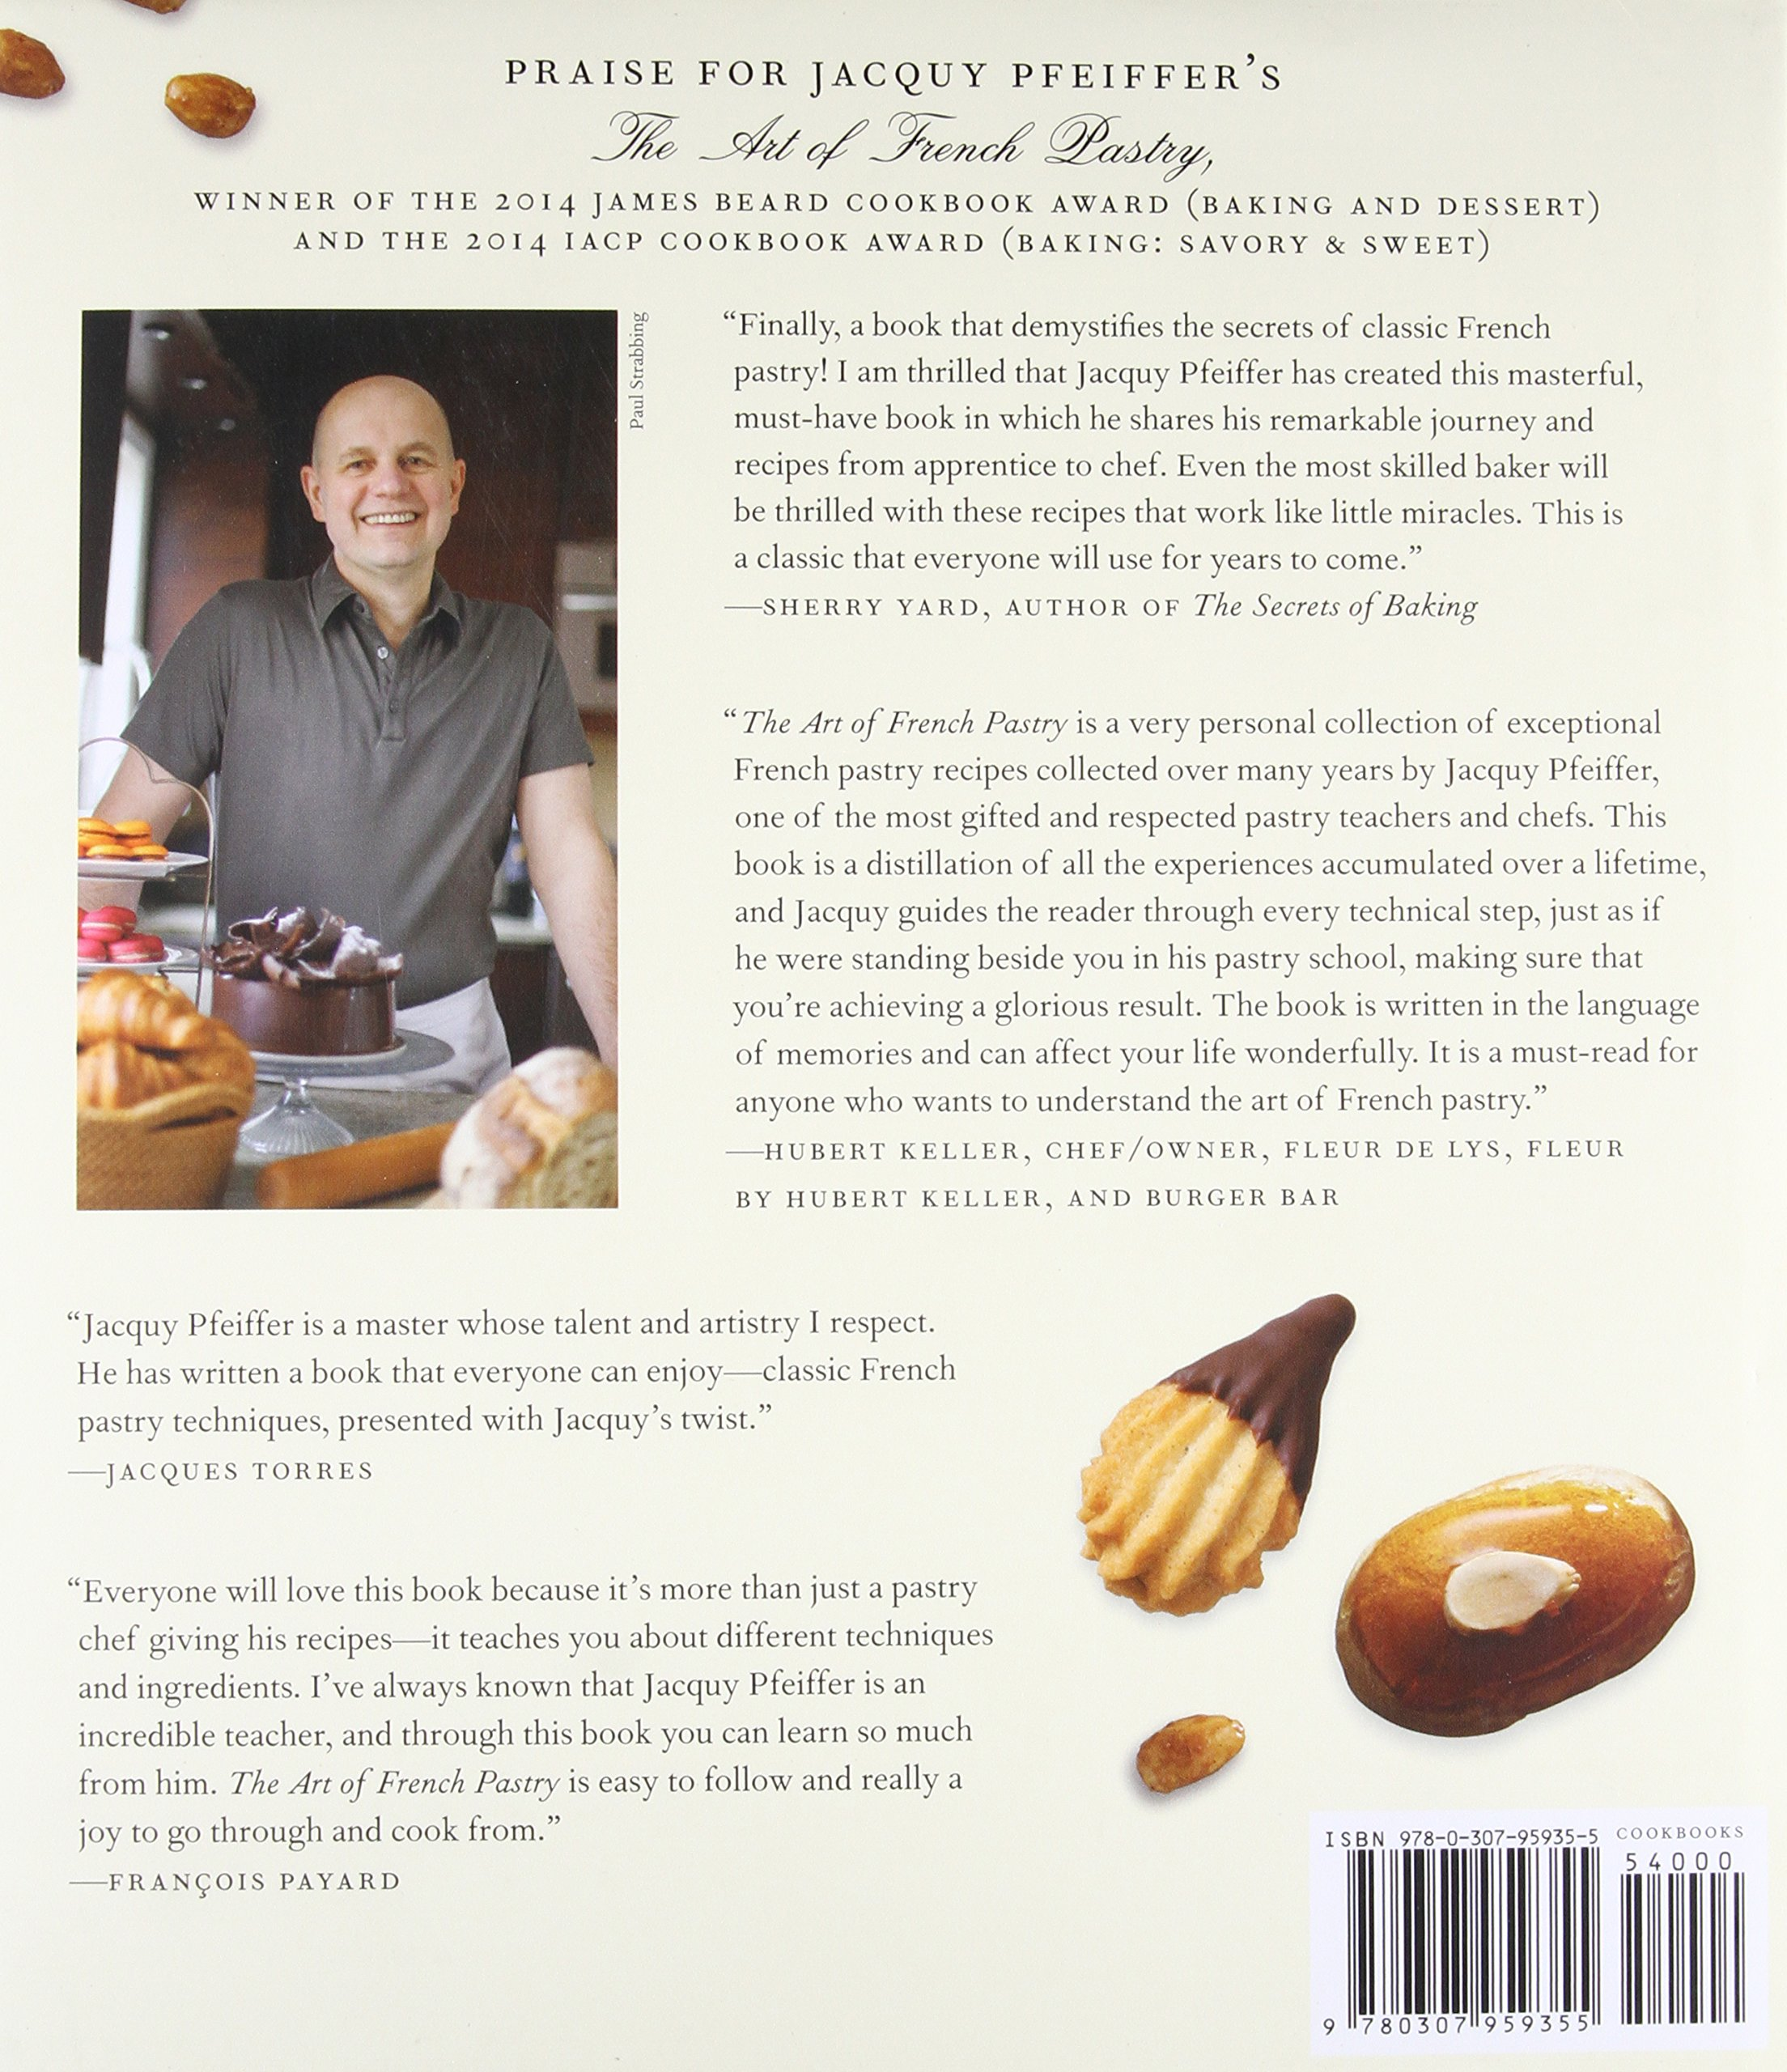 The art of french pastry jacquy pfeiffer martha rose shulman the art of french pastry jacquy pfeiffer martha rose shulman 9780307959355 amazon books fandeluxe Gallery